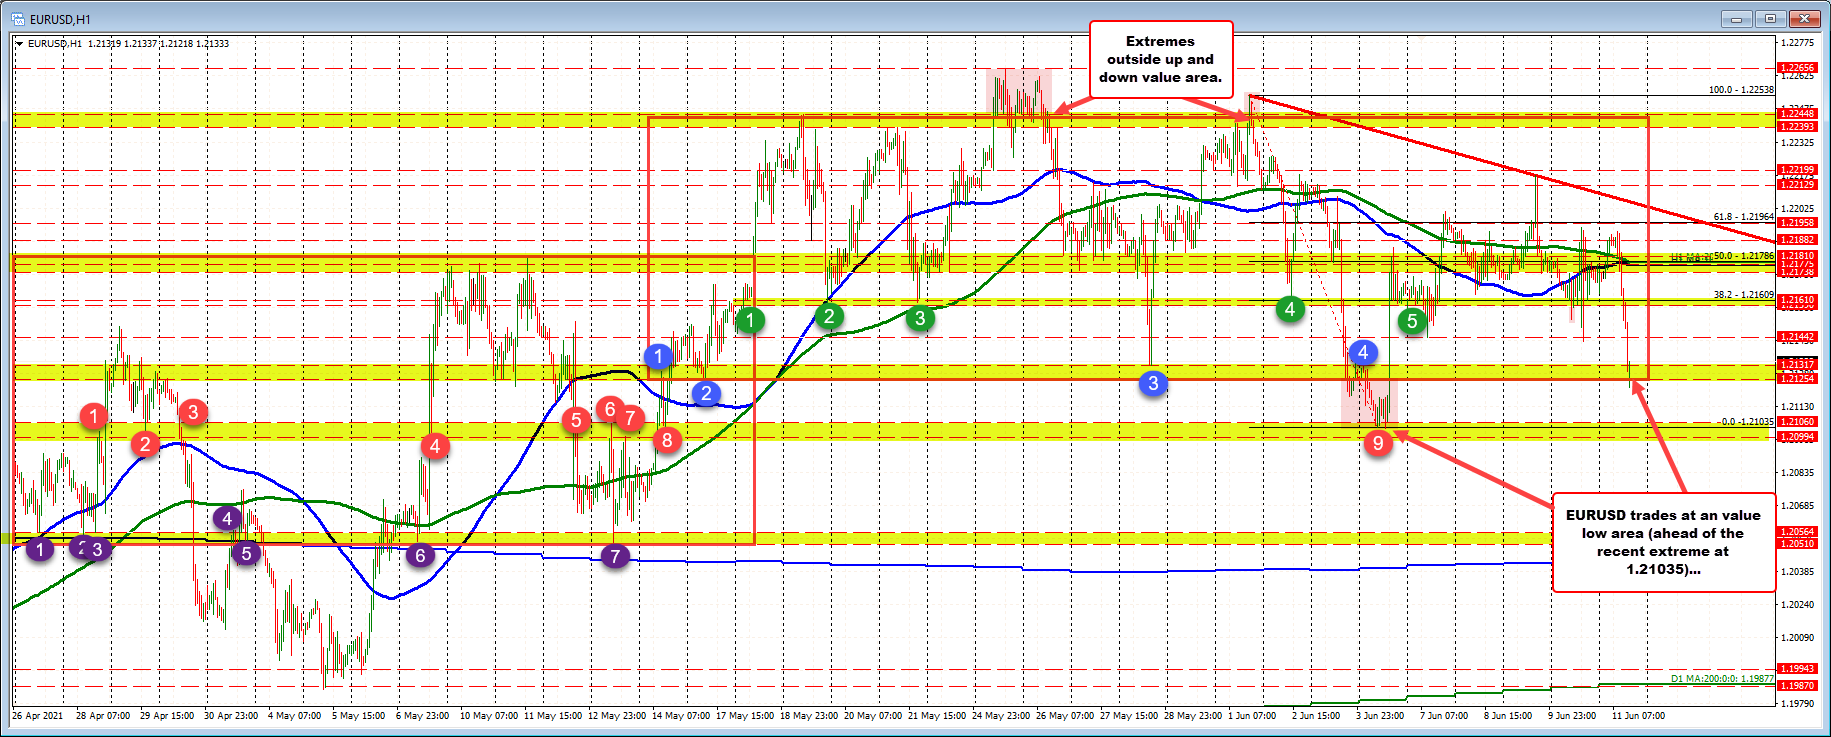 1.2125 to 1.21317 low value area tested